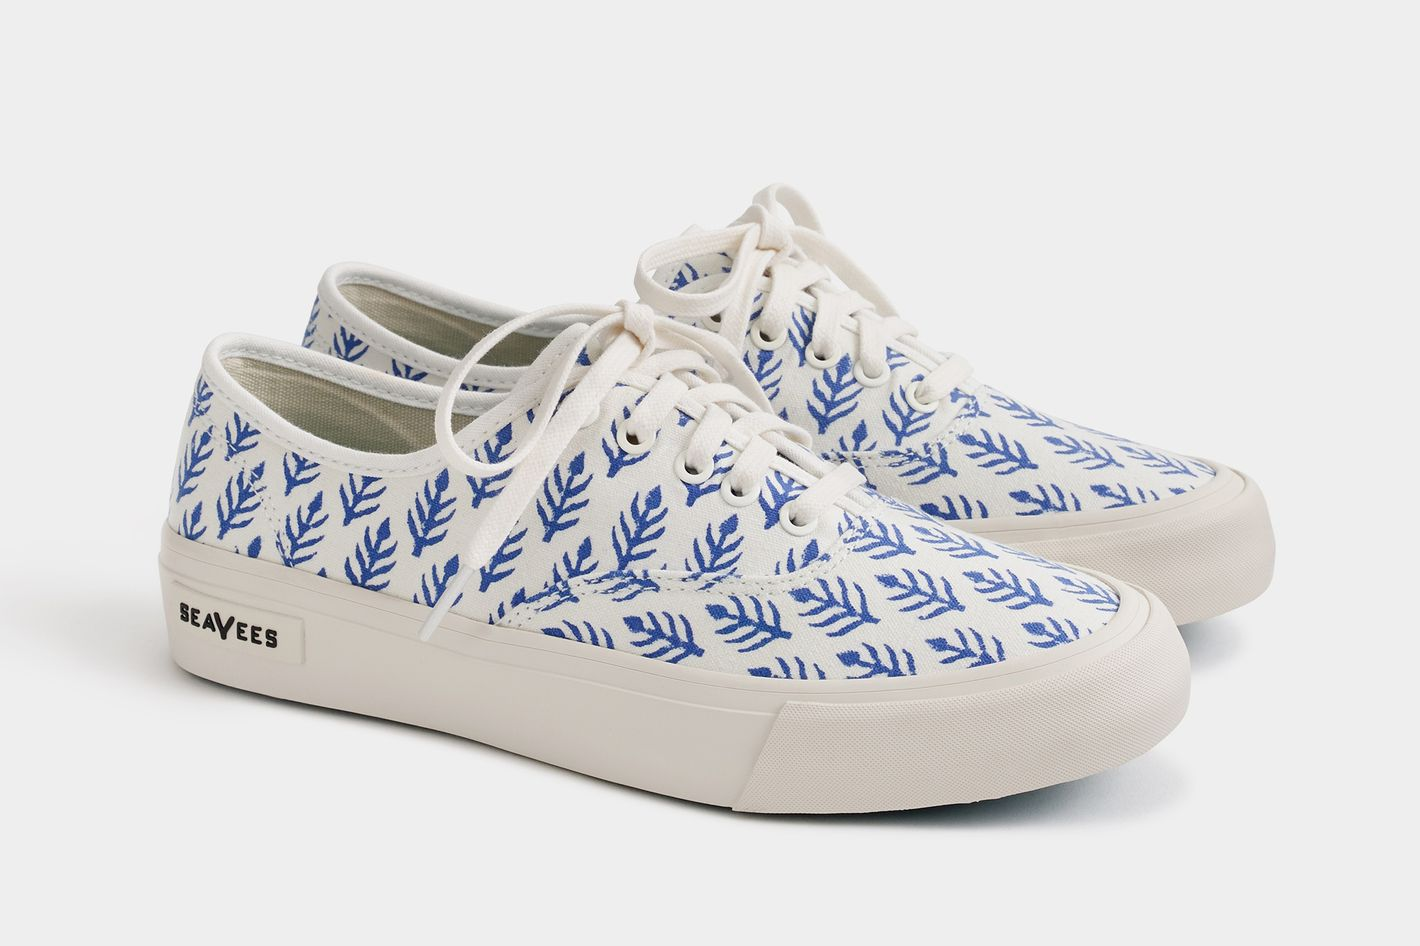 SeaVees® for J.Crew Legend sneakers in SZ Blockprints™ blue leaves